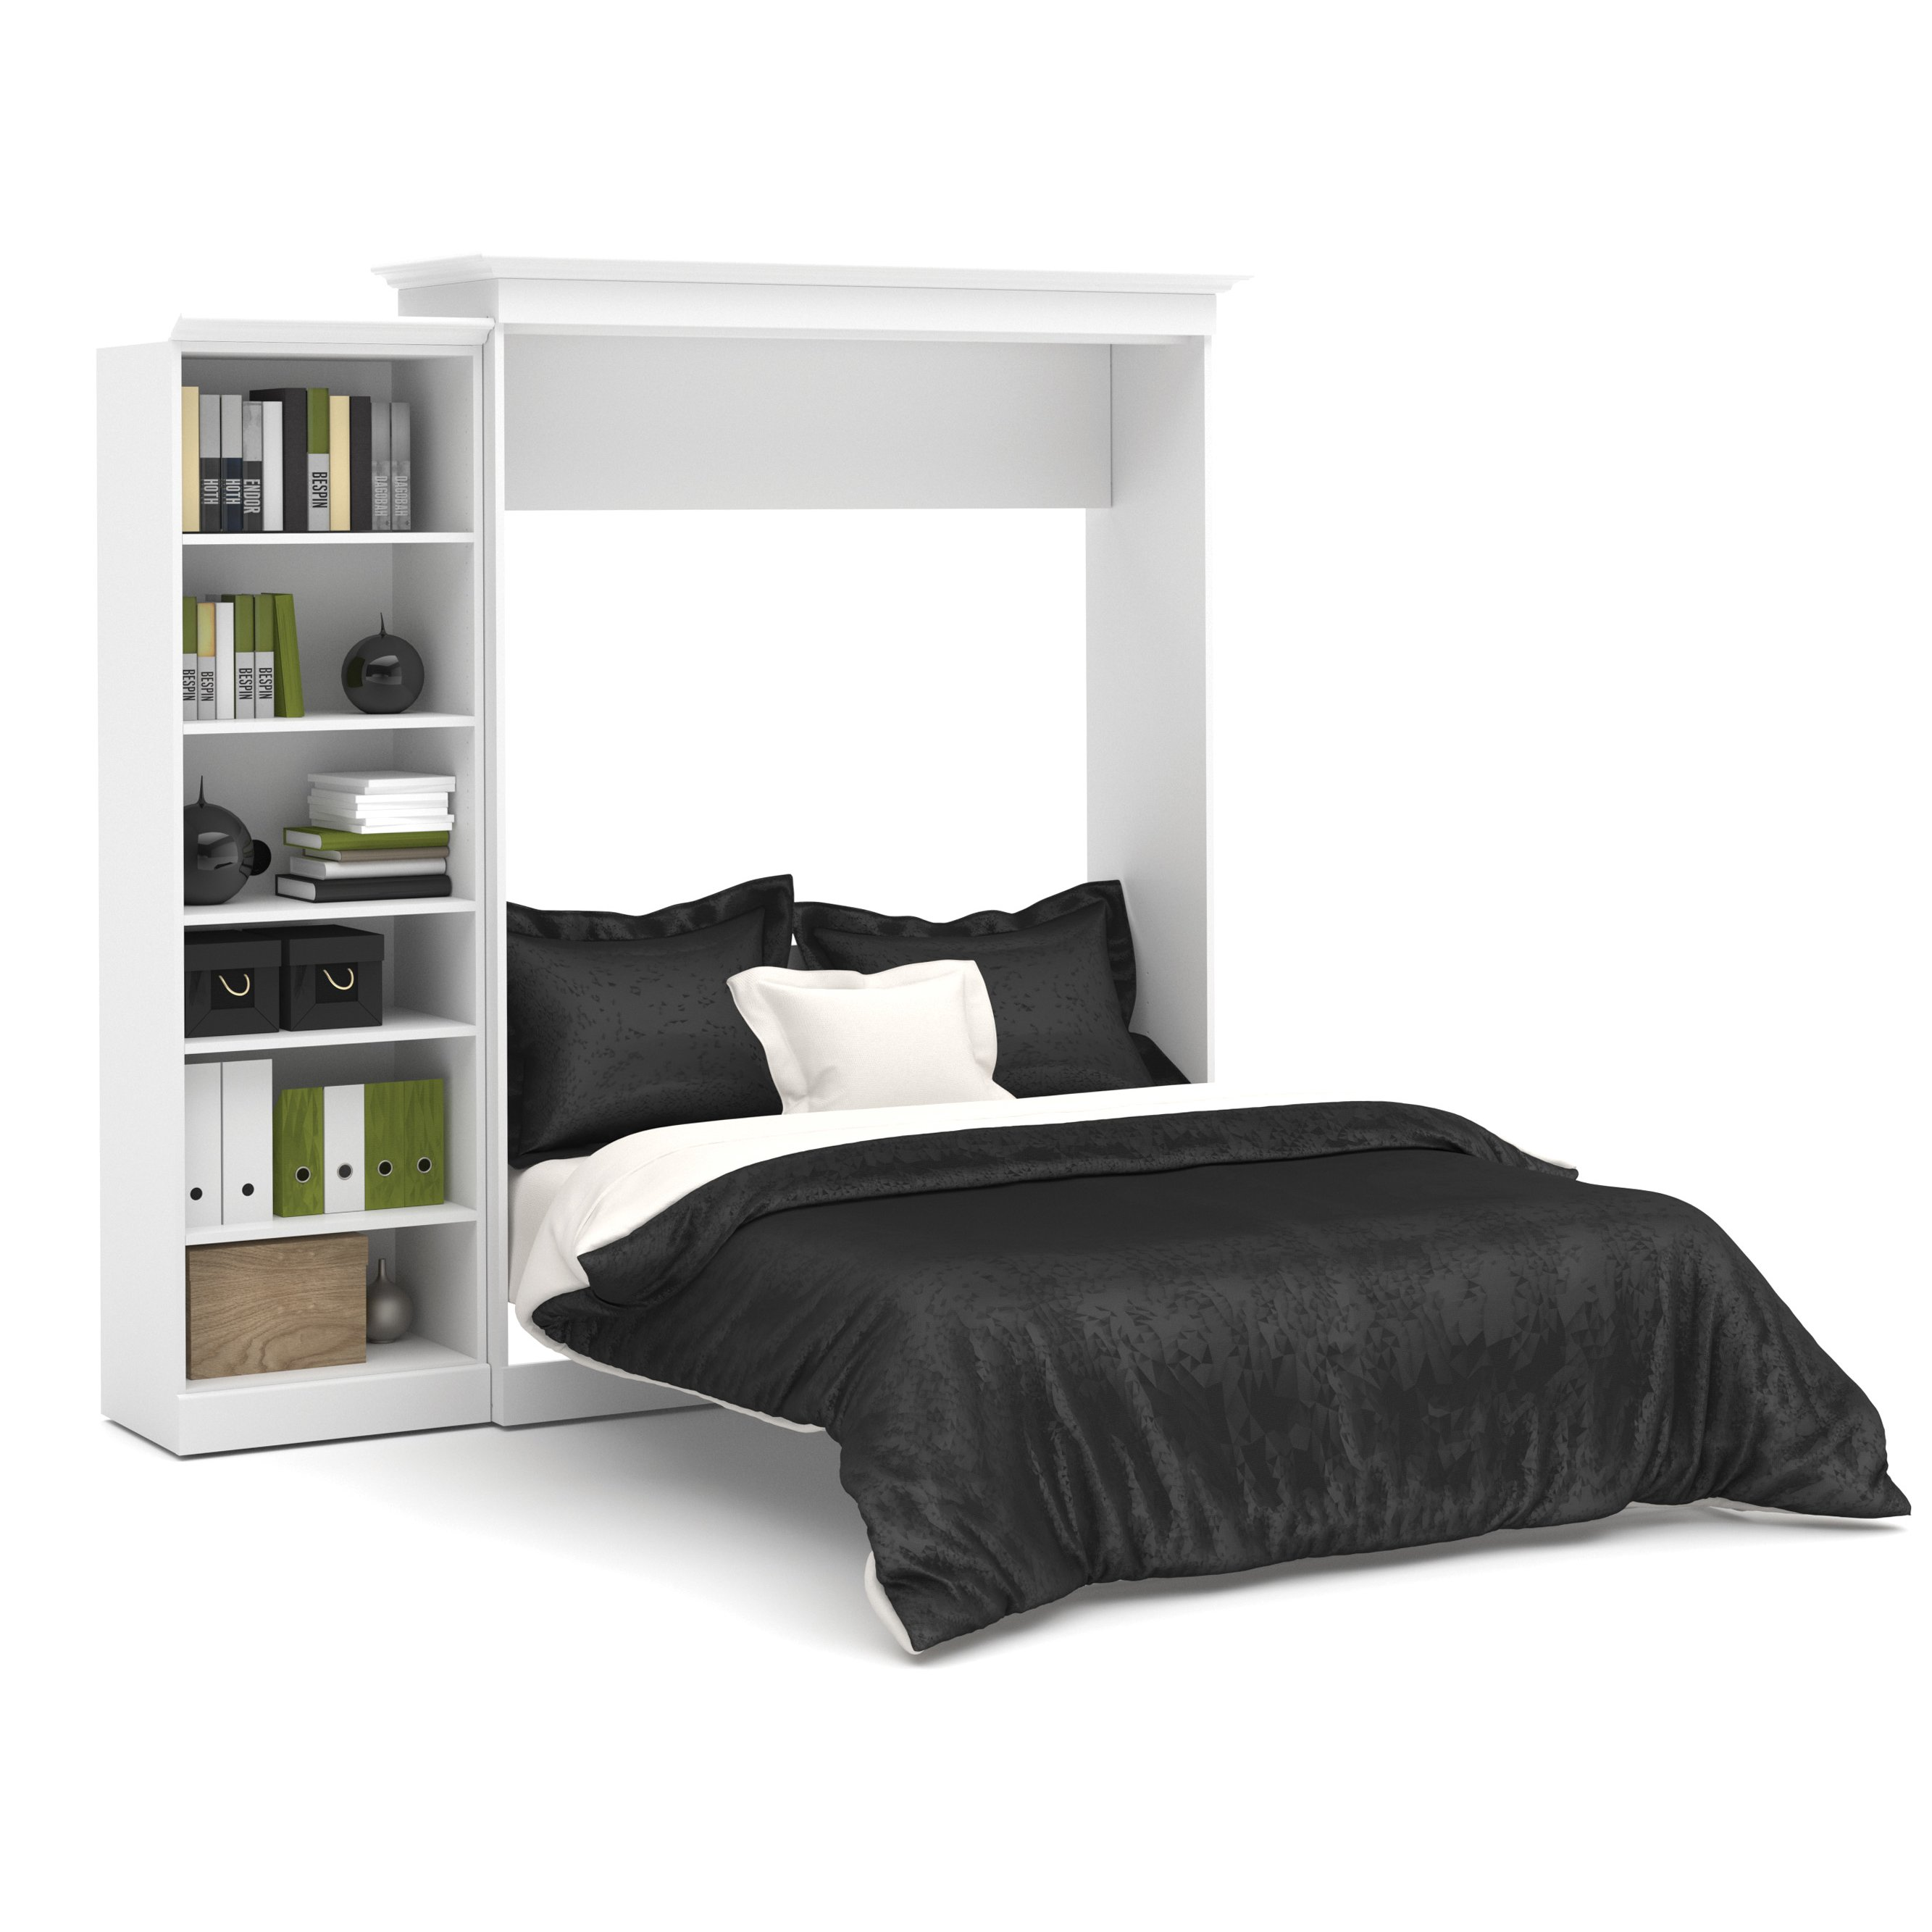 10 Murphy Beds Amp Wall Beds For Small Spaces Apartment